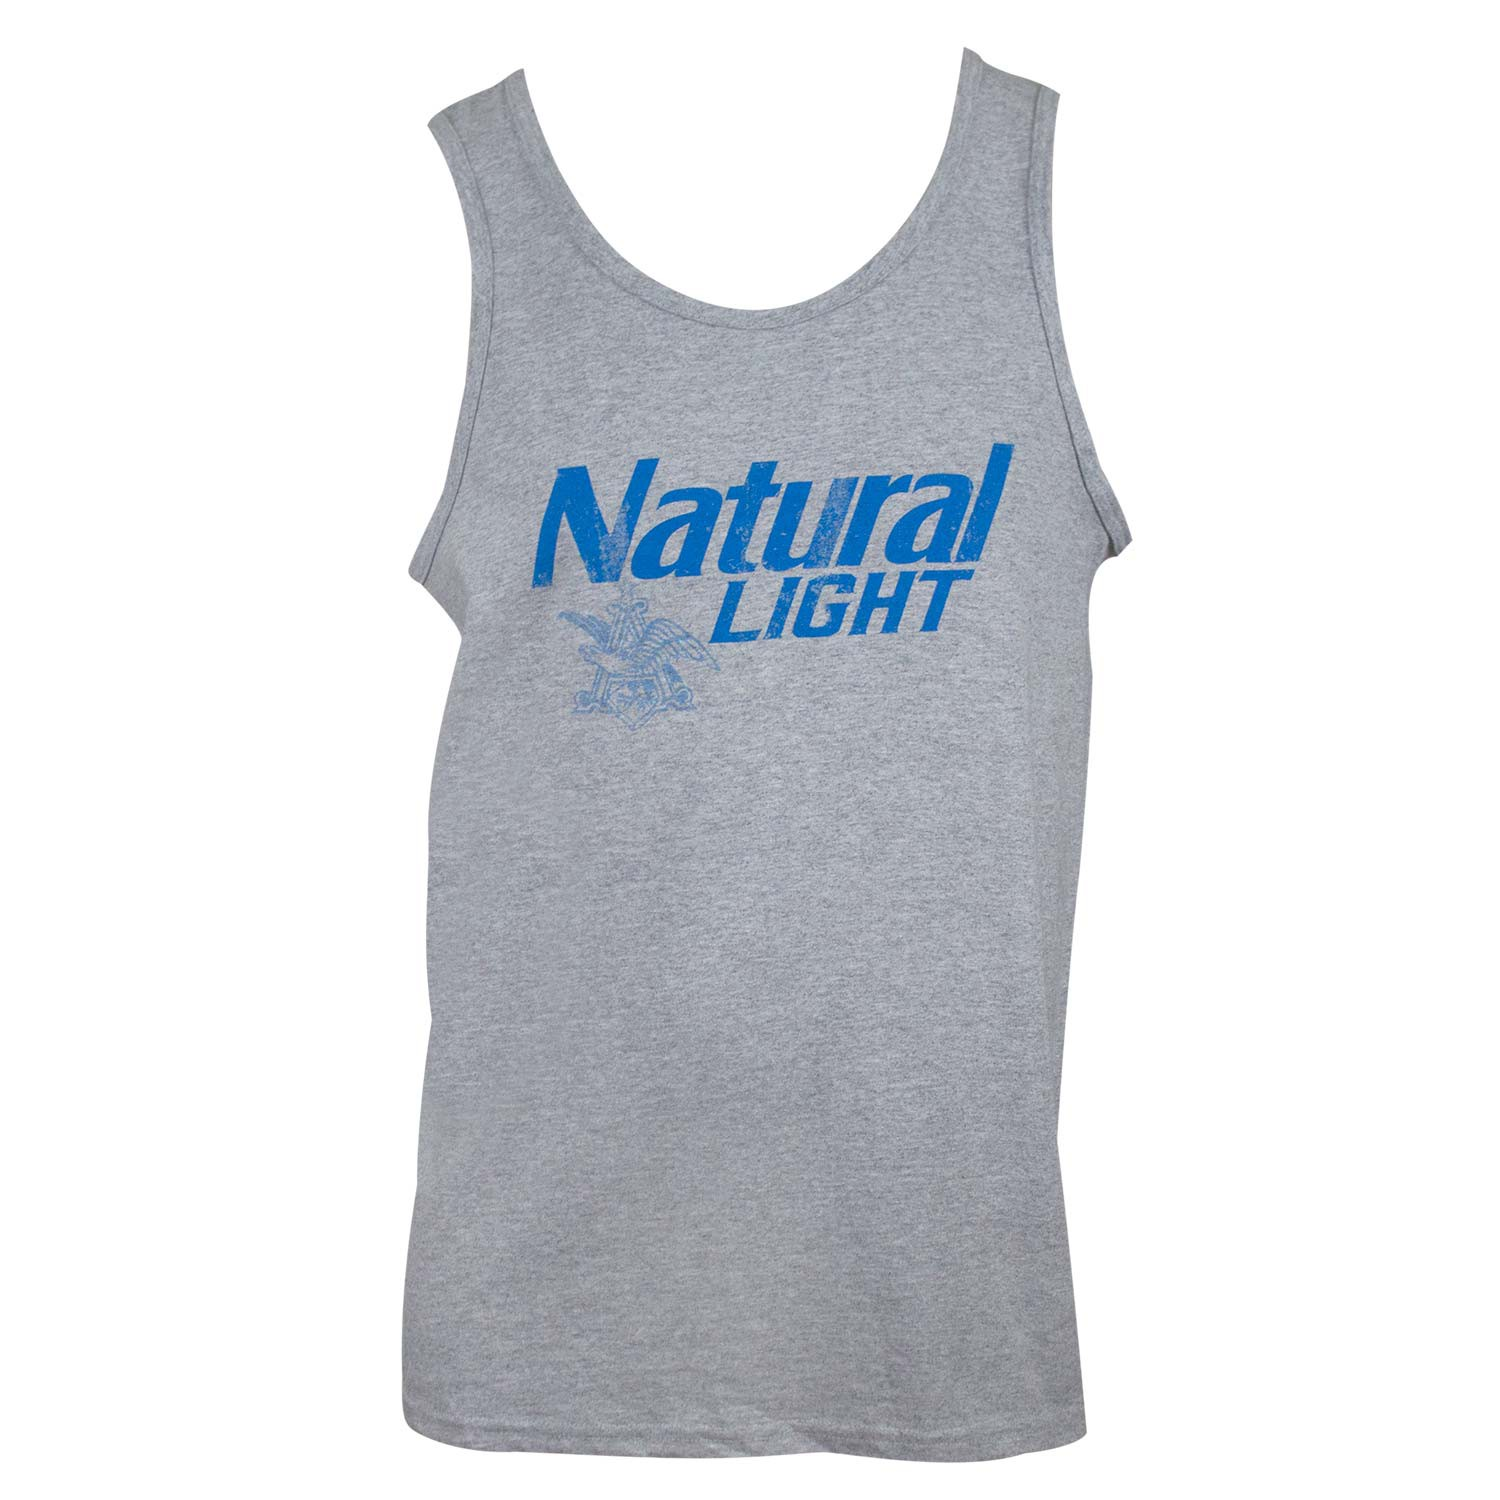 Natural Light Tank Top